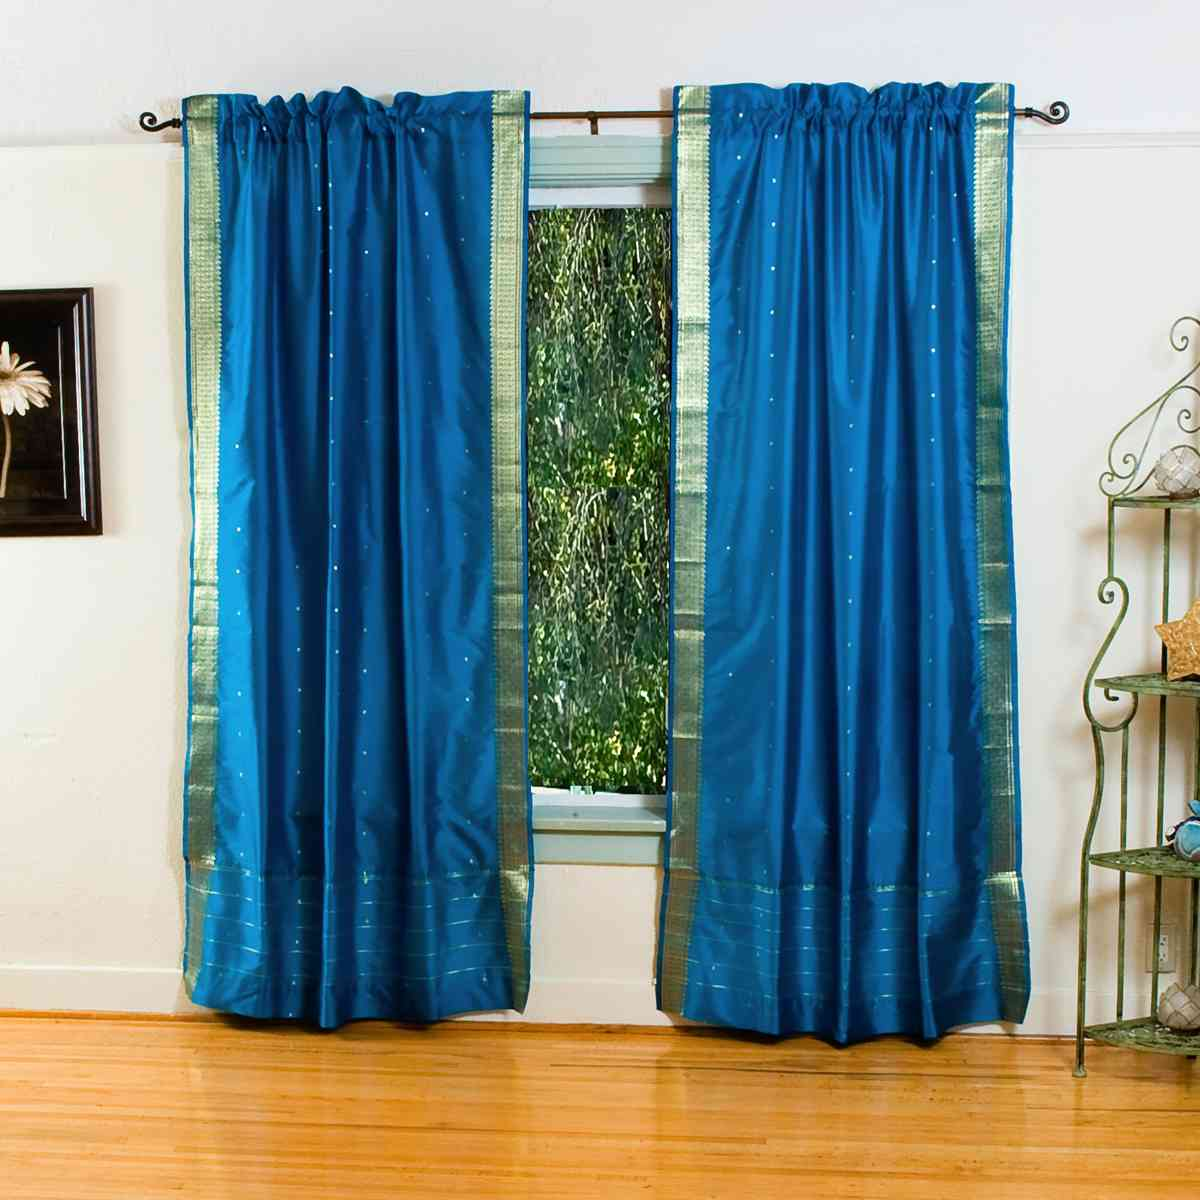 Turquoise Rod Pocket Sheer Sari Curtain / Drape / Panel